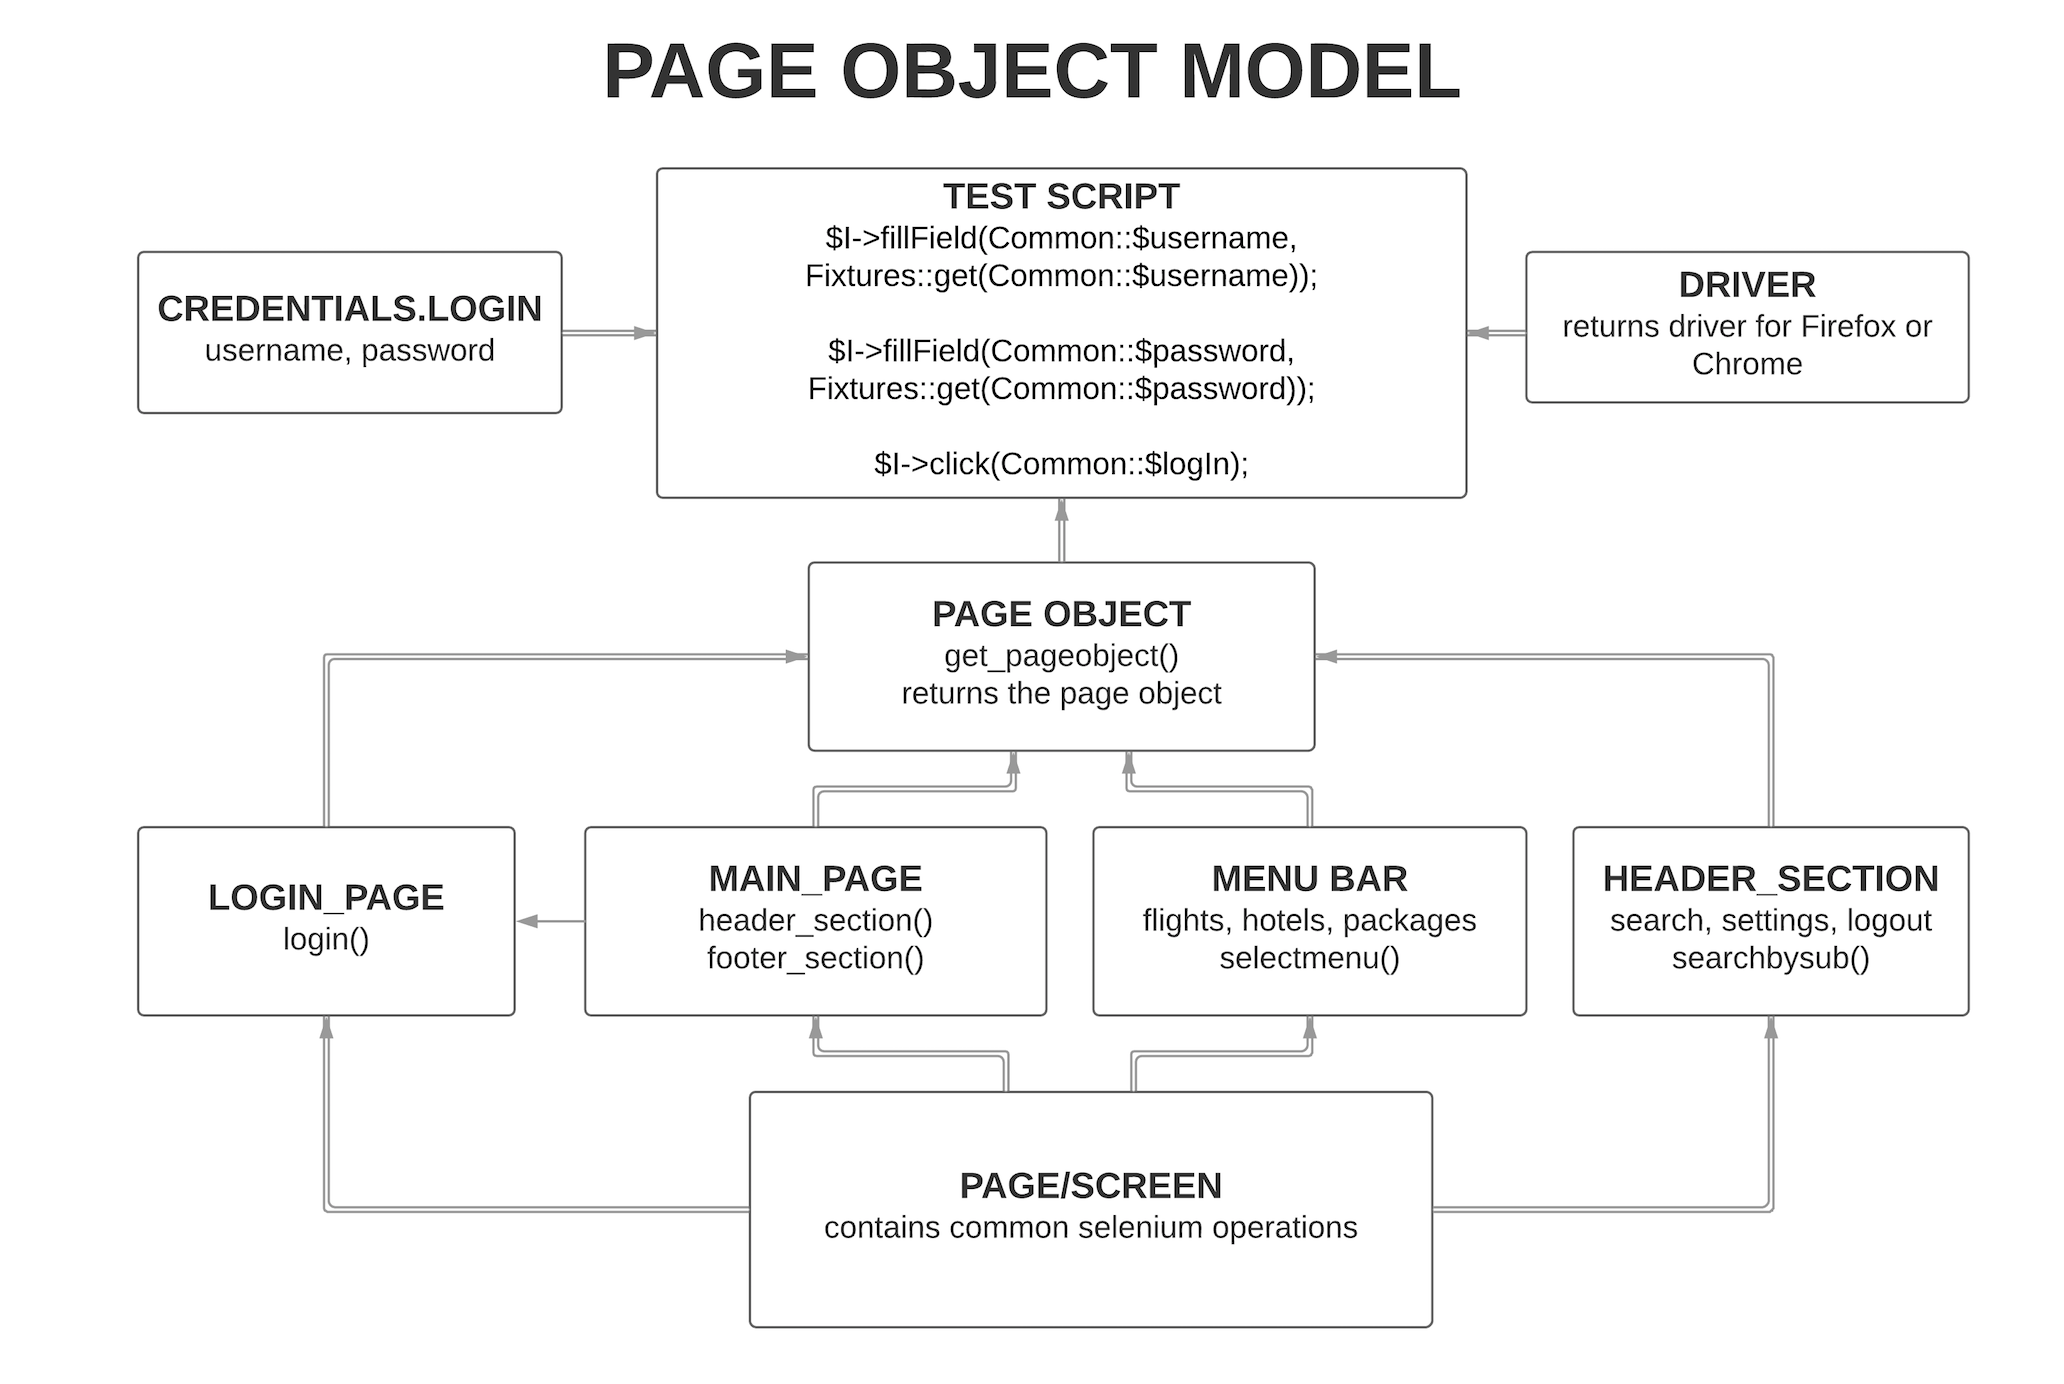 Page Object Model (POM) | Design Pattern - tajawal - Medium